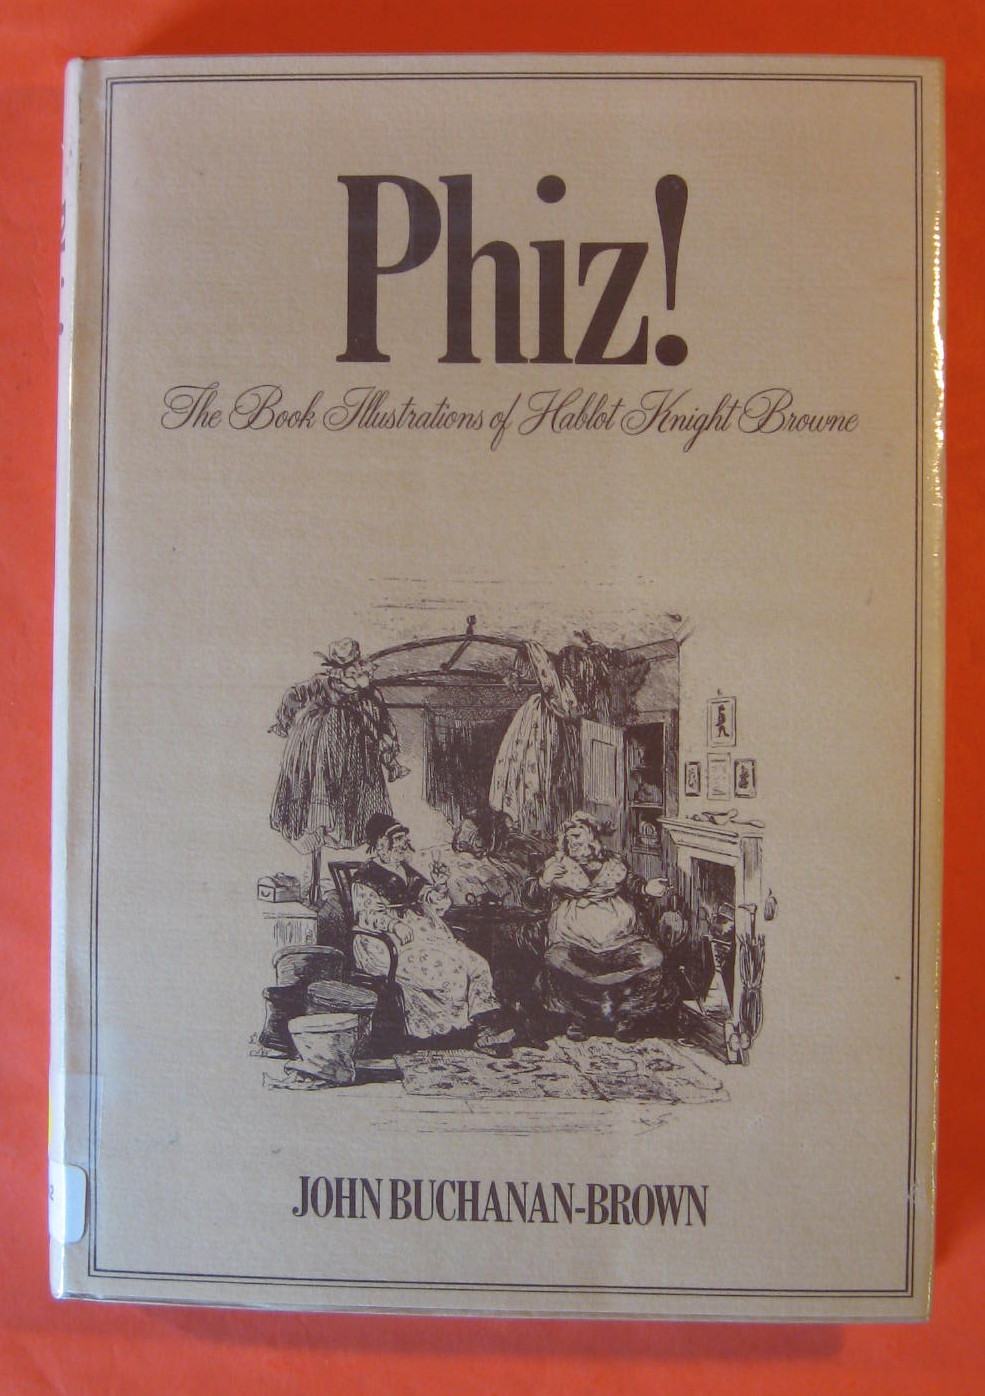 Phiz!: The Book Illustrations of Hablot Knight Browne, Browne, Hablot Knight  ;Buchanan-Brown, John